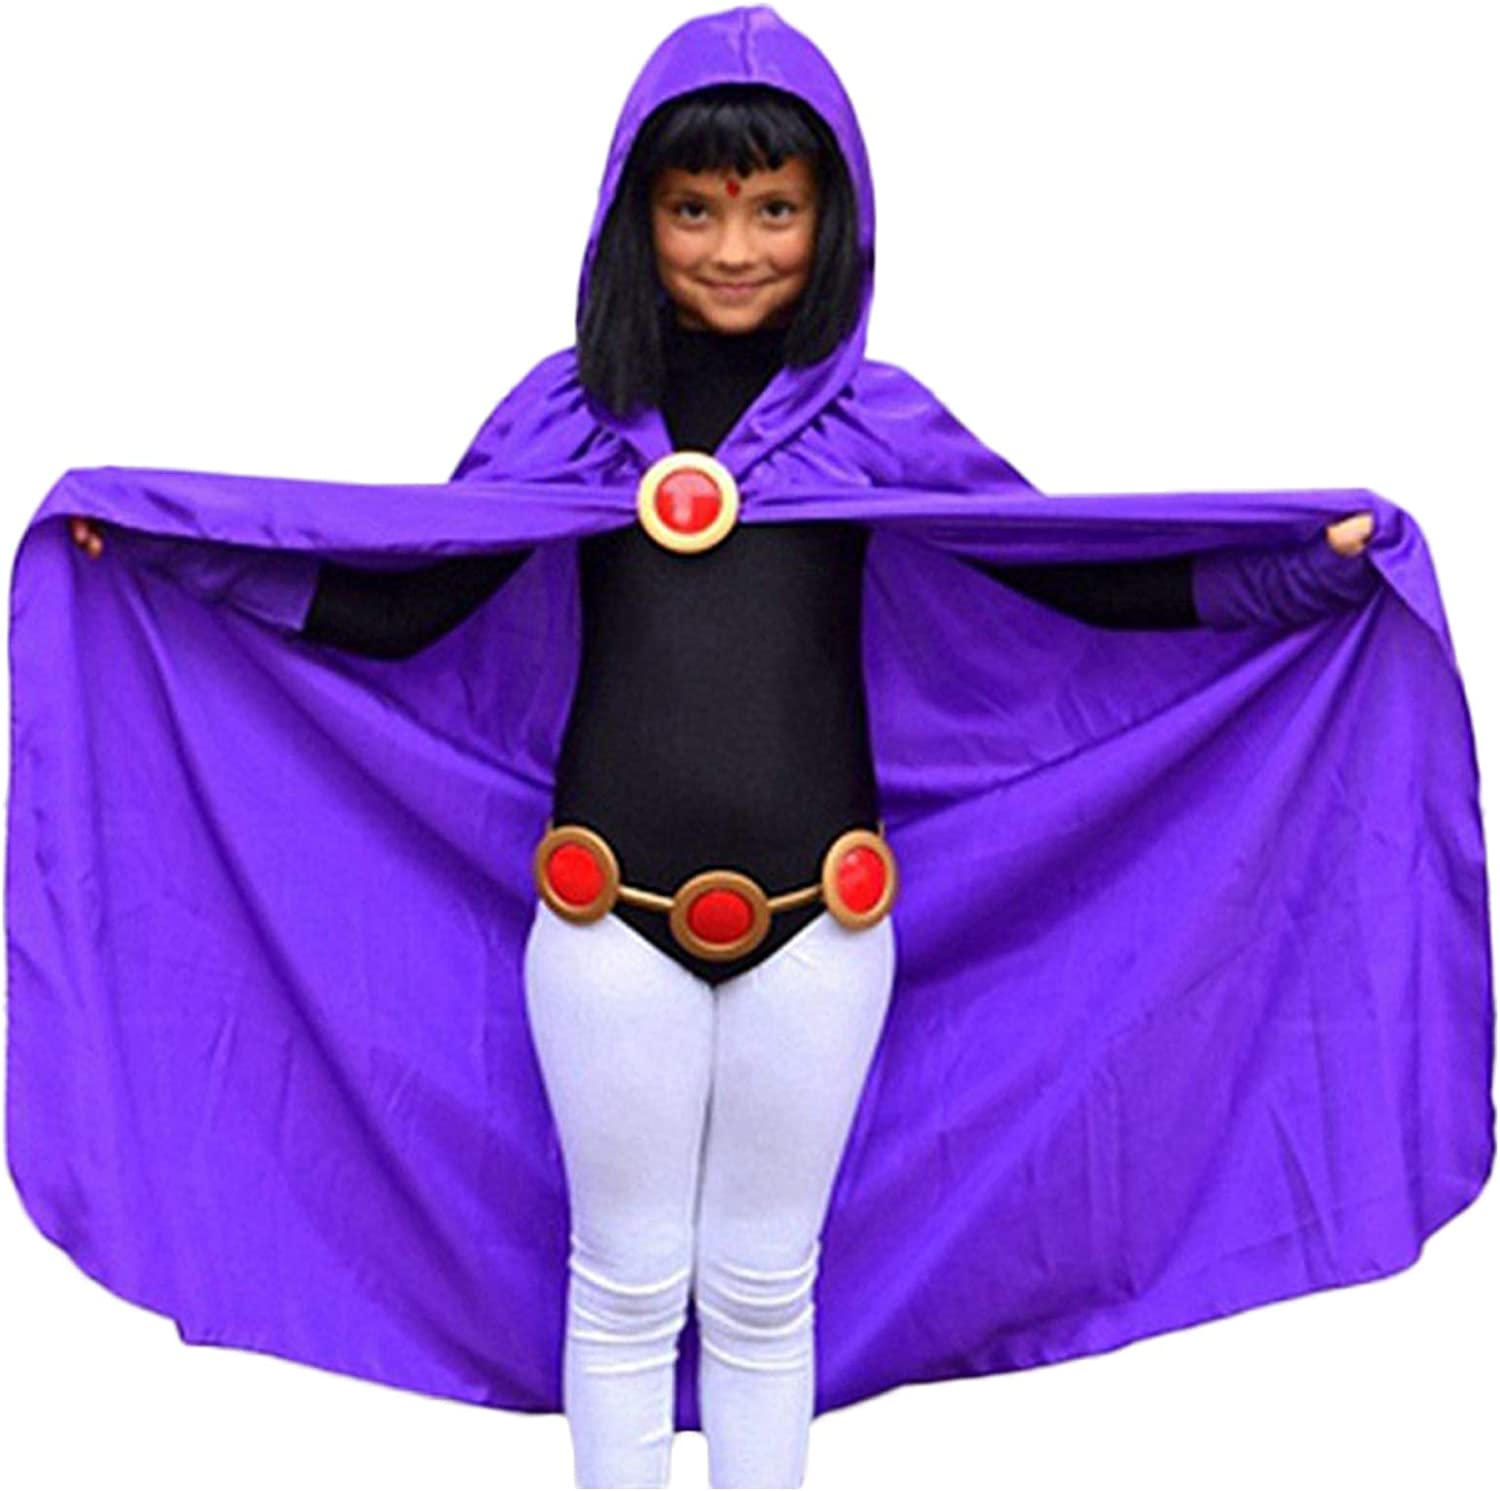 Teen Titans Raven Costume Purple Hooded Cloak Jumpsuit Raven Cosplay Outfit with Belt for Halloween Christmas Party